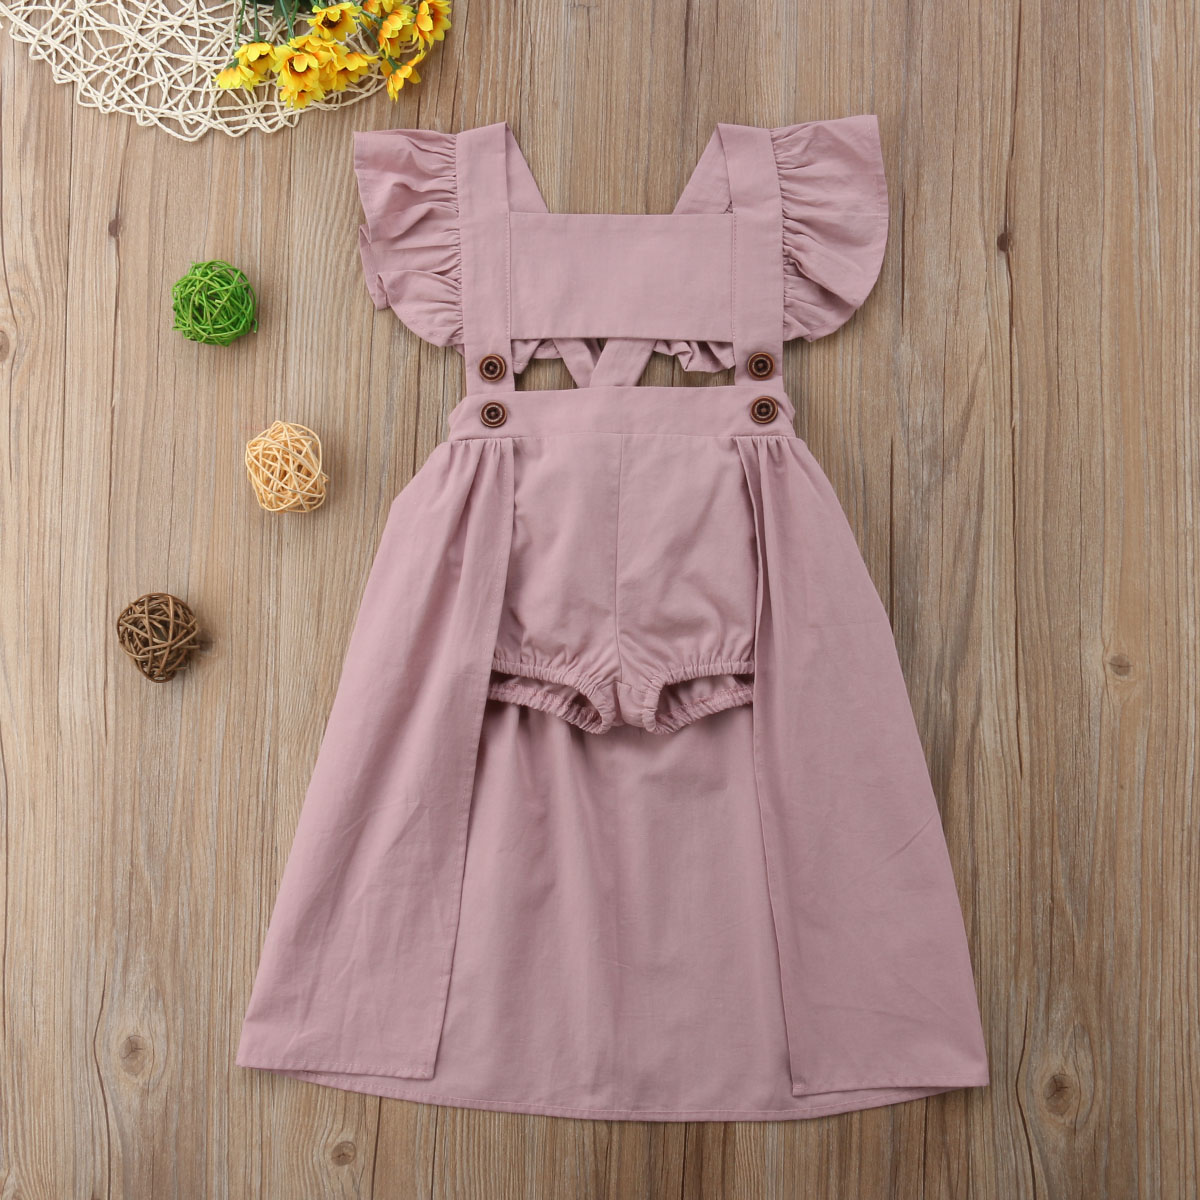 Dresses Enthusiastic Toddler Kids Baby Girls Princess Party Pageant Floral A Line Dress Sundress